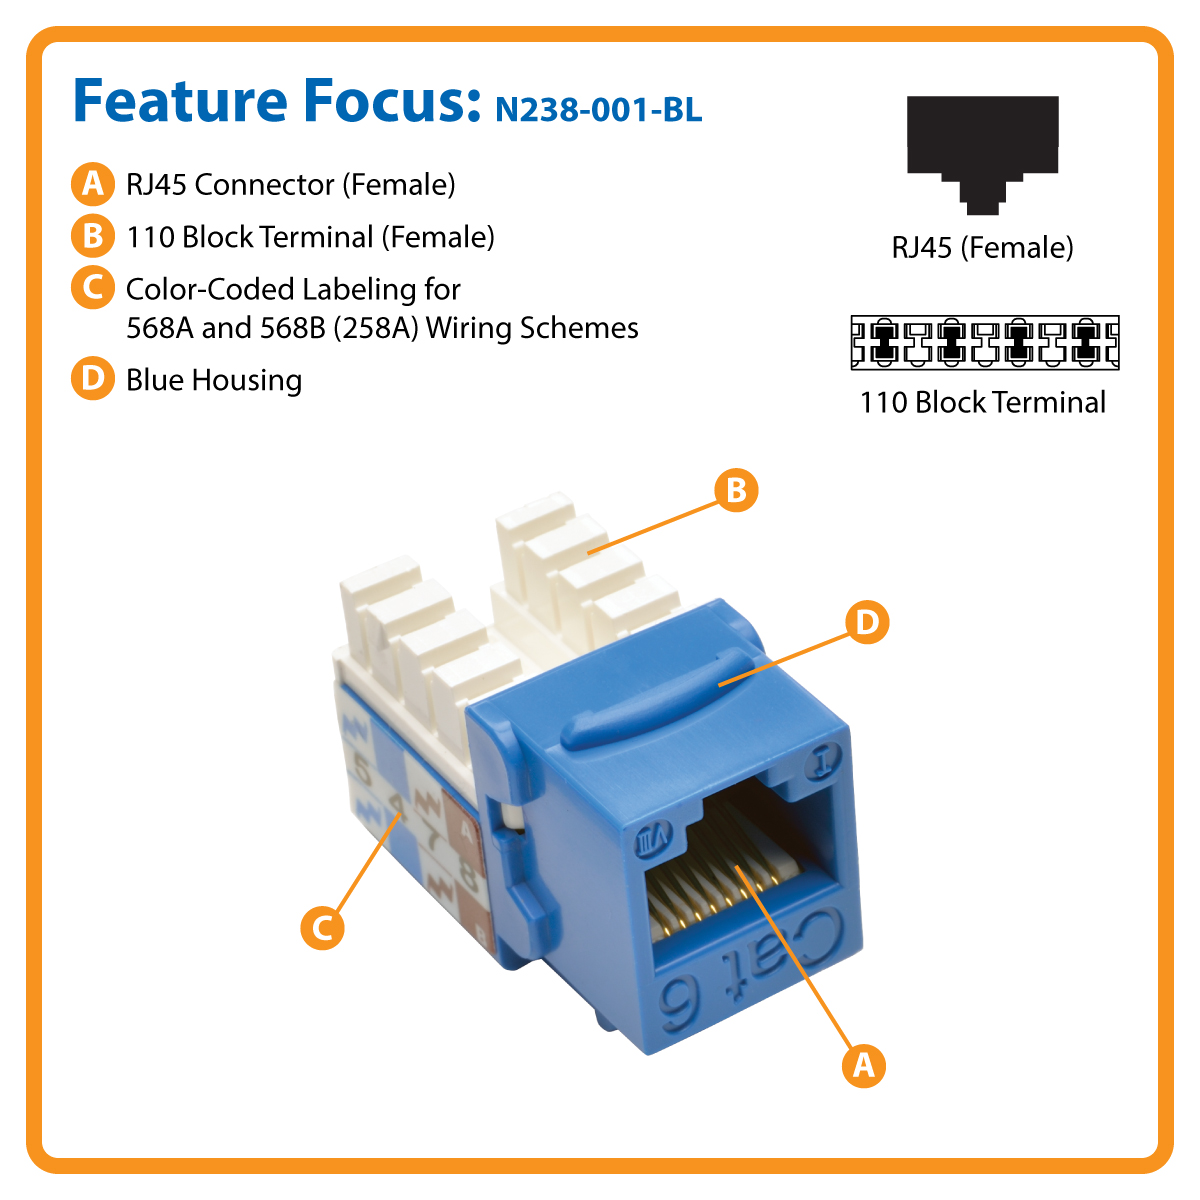 Tripp Lite Cat6 Cat5e 110 Style Punch down Keystone Jack RJ45 Blue on rj45 cable wiring, cat 5 wiring diagram, rj45 plug diagram, rj11 plug diagram, power jack wiring diagram, cisco switch port diagram, ethernet connector diagram, cat5e wiring diagram, cat 6 wiring diagram, rj45 connector plug, rj45 connections diagram, rj45 plug wiring, cat 5 cable color code diagram, usb wiring diagram, rj45 jack diagram, cat 7 wiring diagram, rj45 crossover diagram, rj45 to rj11 wiring, rj45 connector block diagram, rj45 pinout diagram,